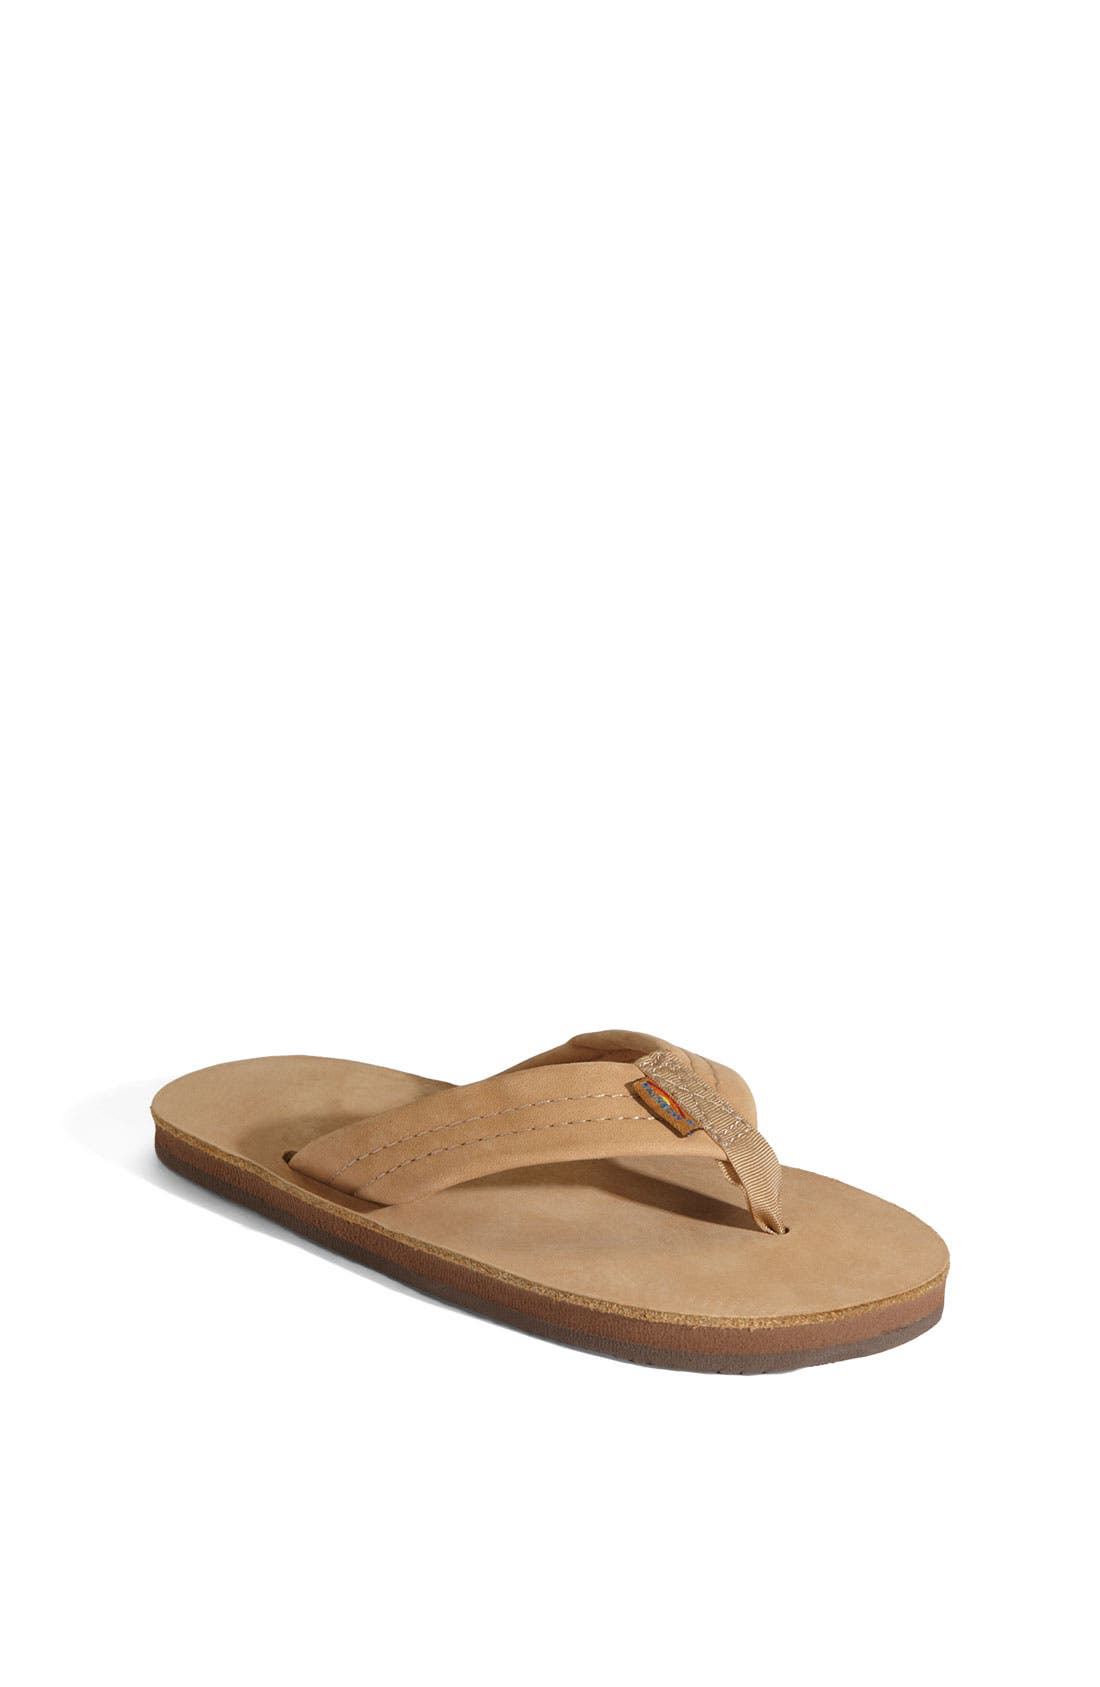 Main Image - Rainbow Leather Sandal (Toddler, Little Kid & Big Kid)